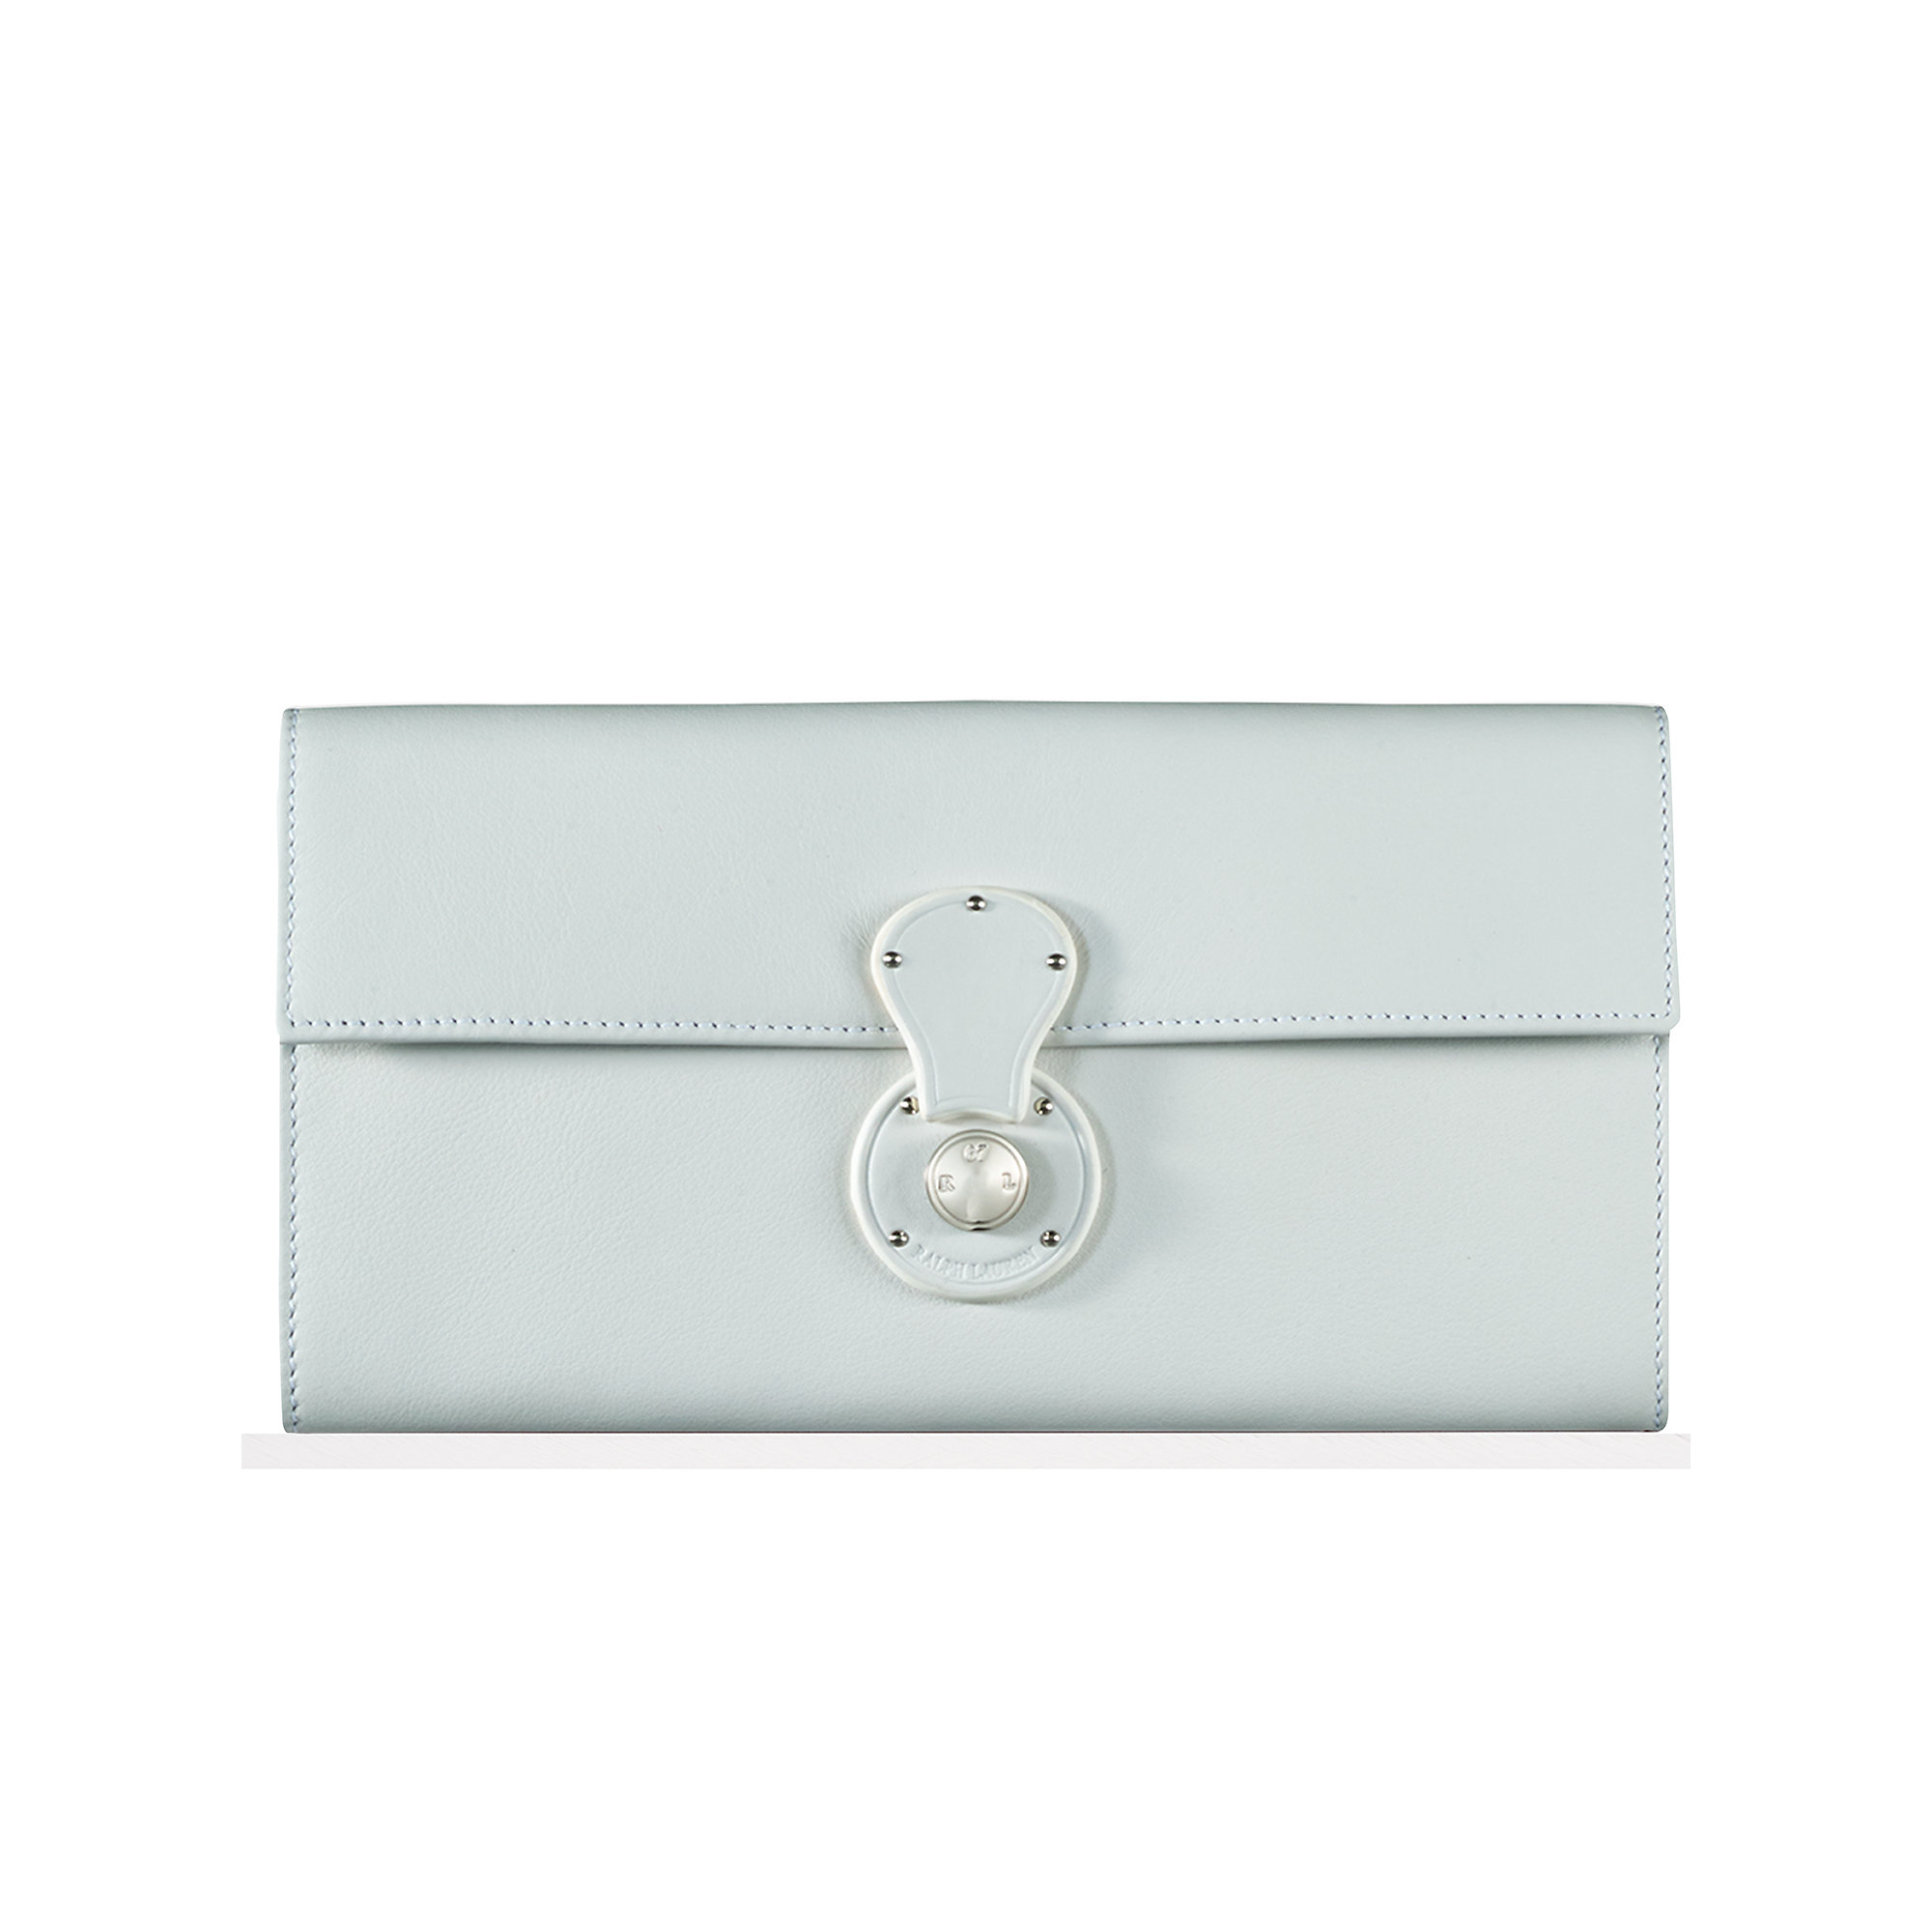 aa03f189bd6 Lyst - Pink Pony Soft Ricky Continental Wallet in White